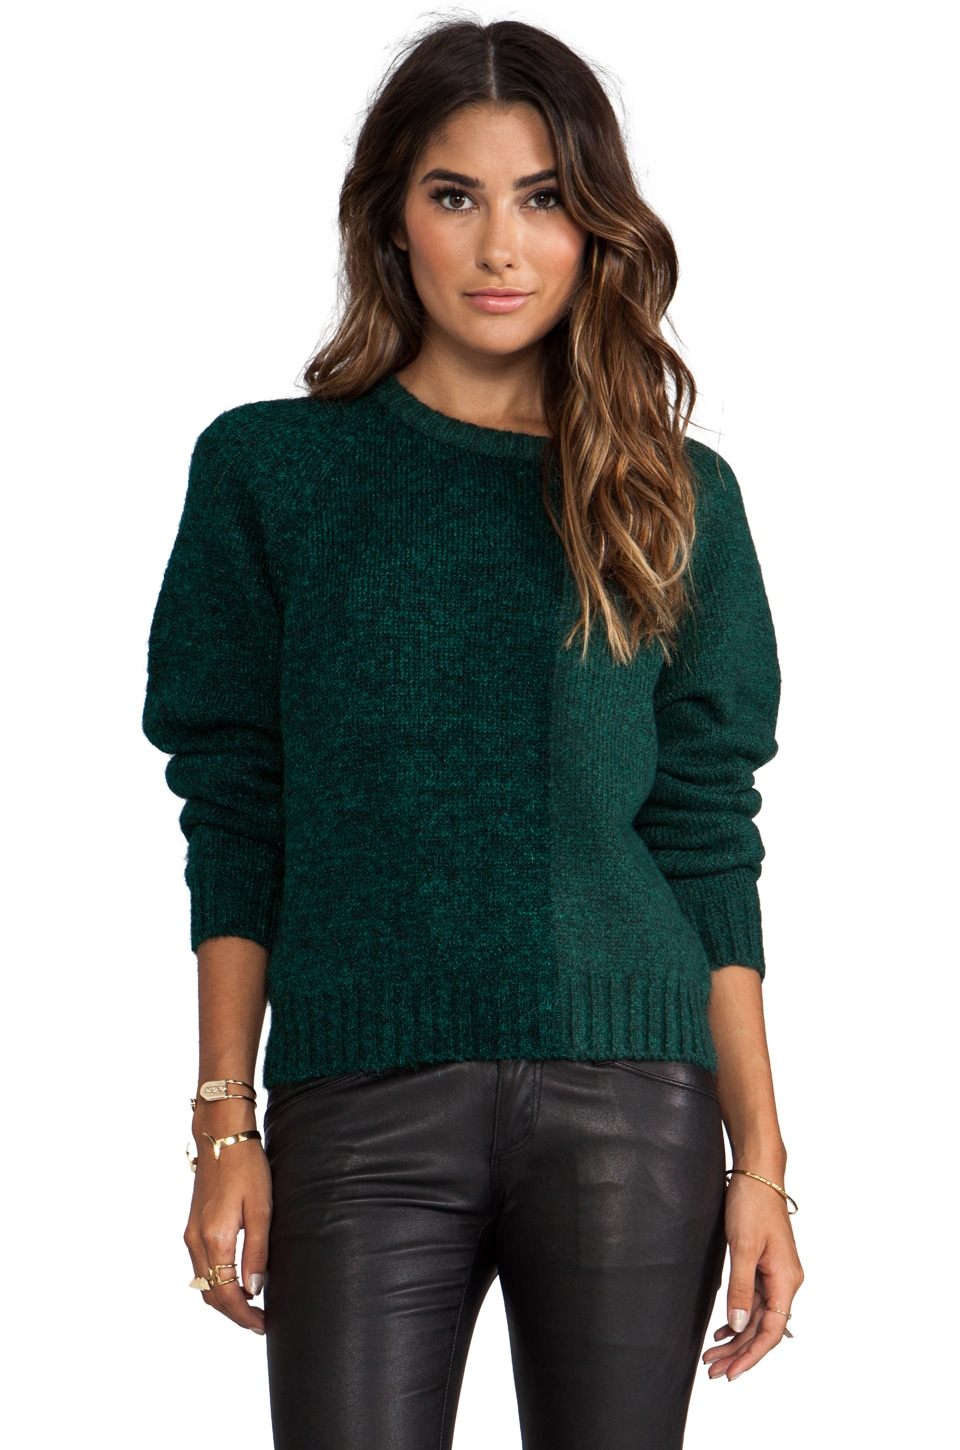 BLK DNM Sweater 46 in Pine Green